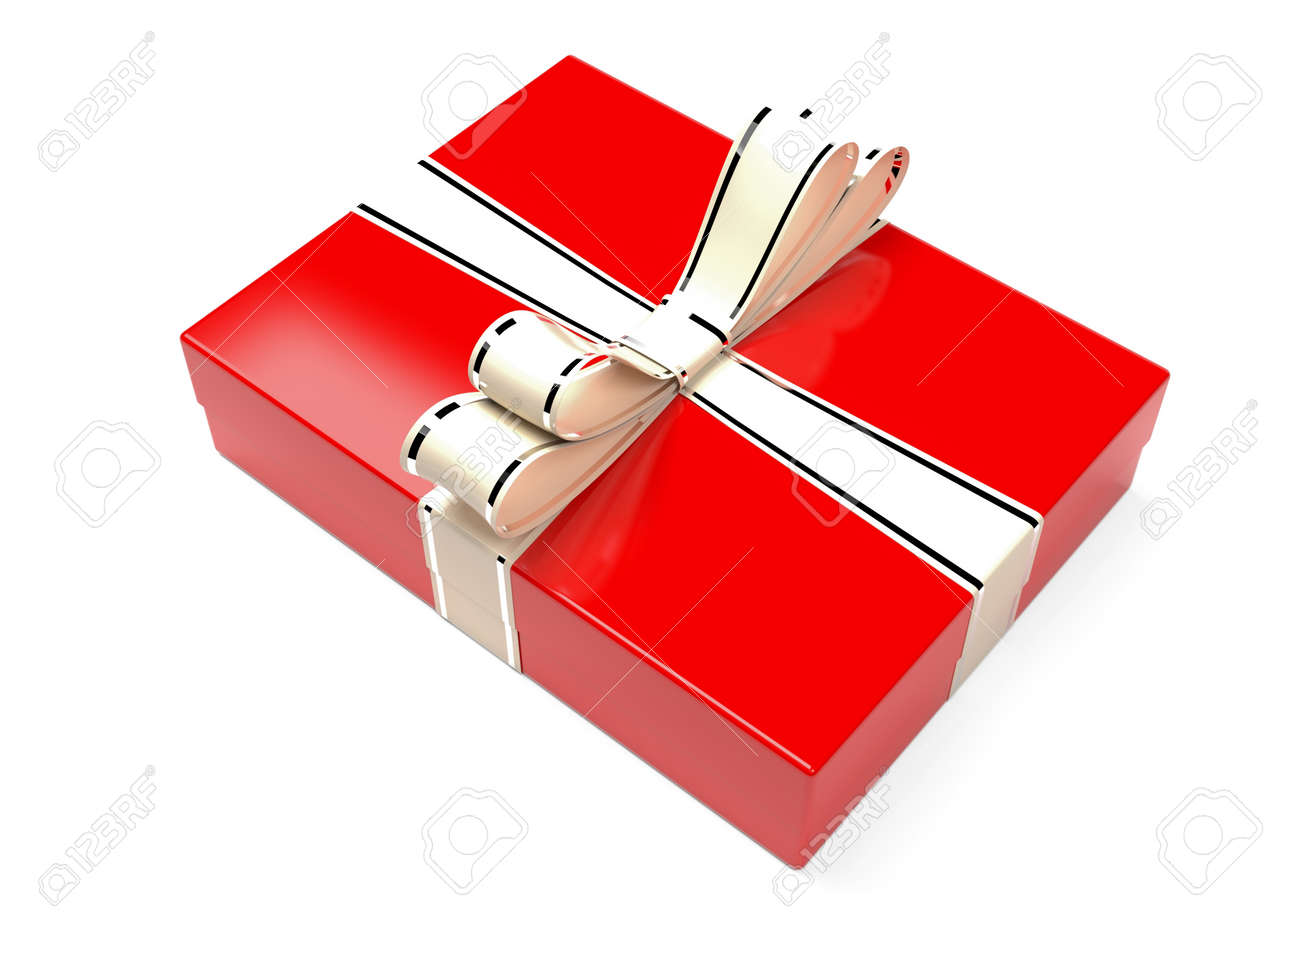 Christmas box. Red gift box decorated with shiny silver ribbon. 3d rendering illustration isolated on white background - 150520905